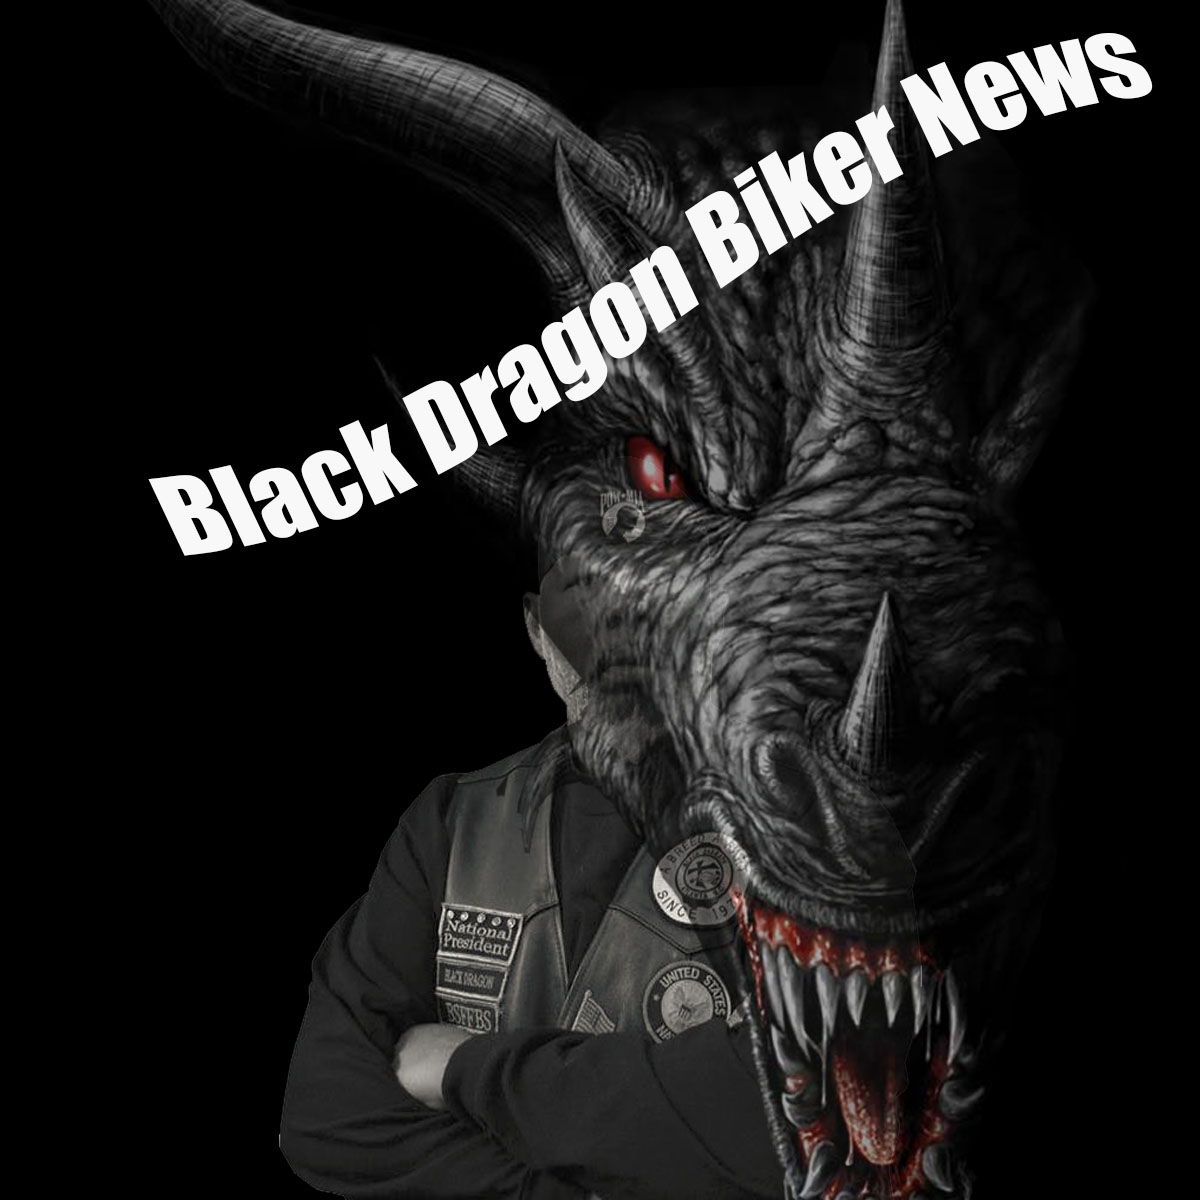 Black Dragon Biker News Network